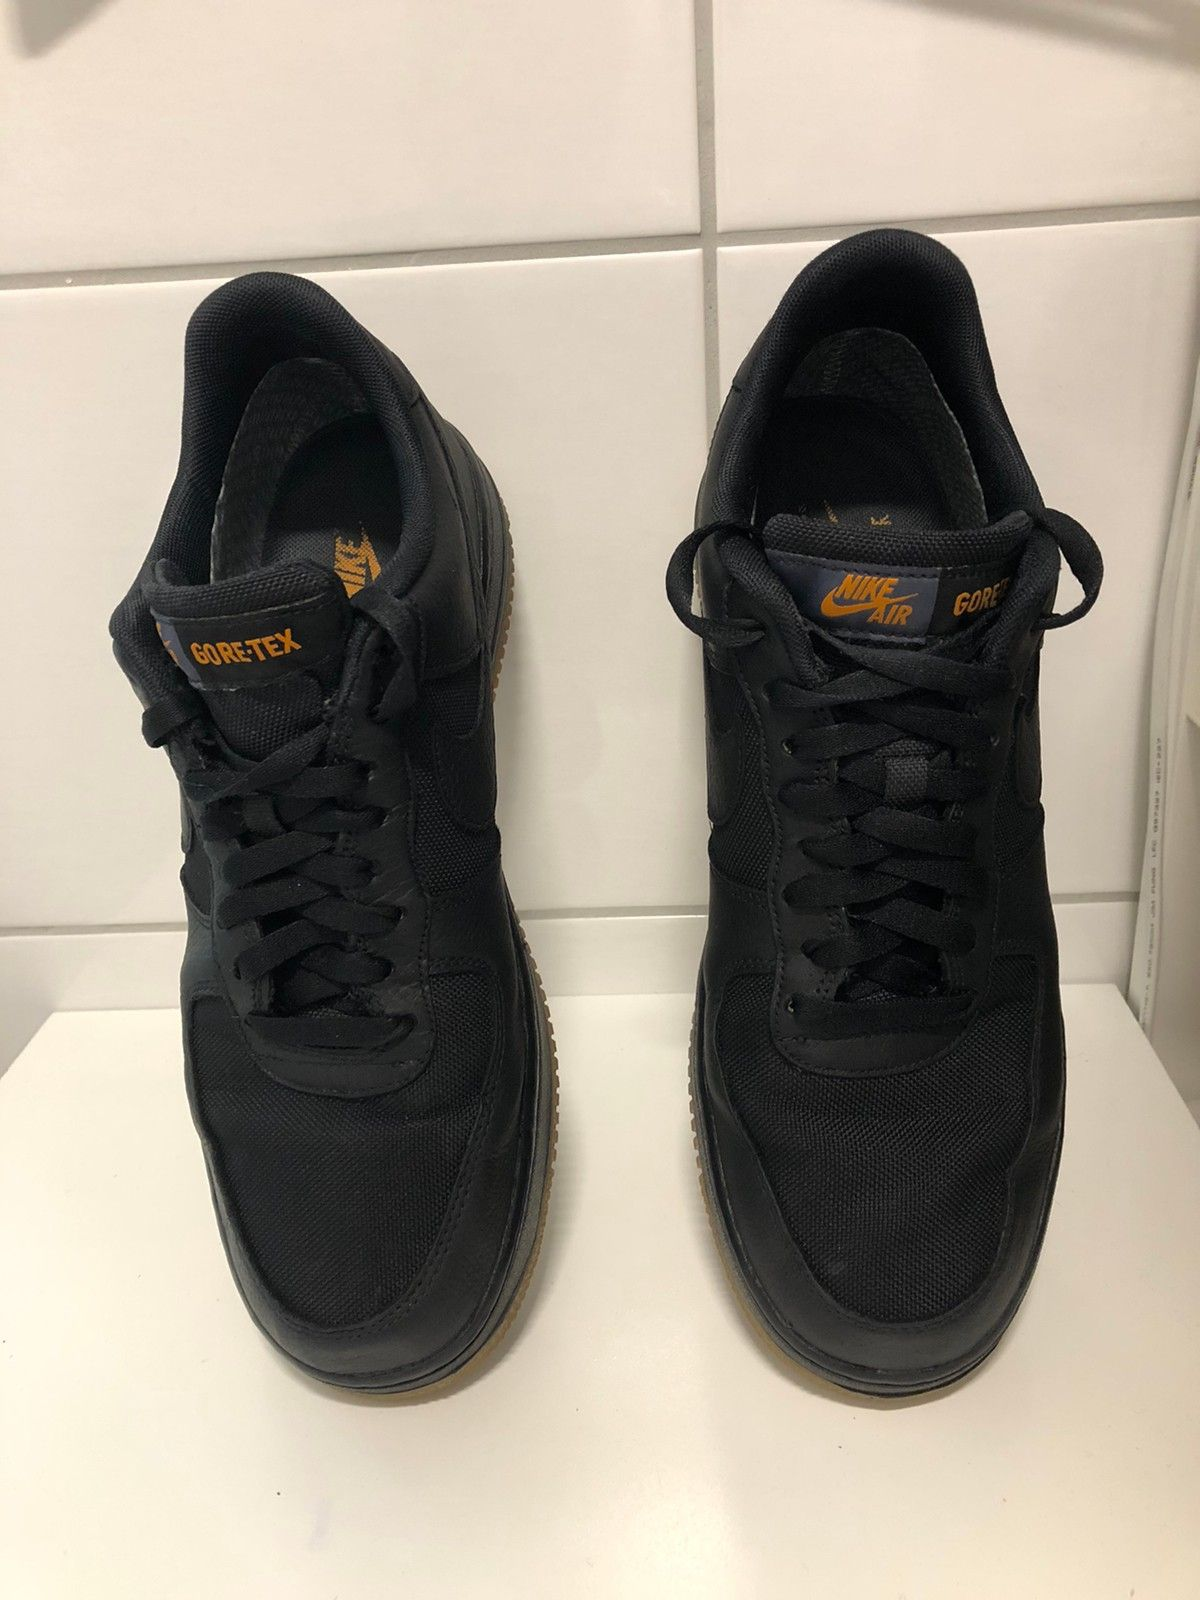 Air Force One GORETEX (45) | FINN.no